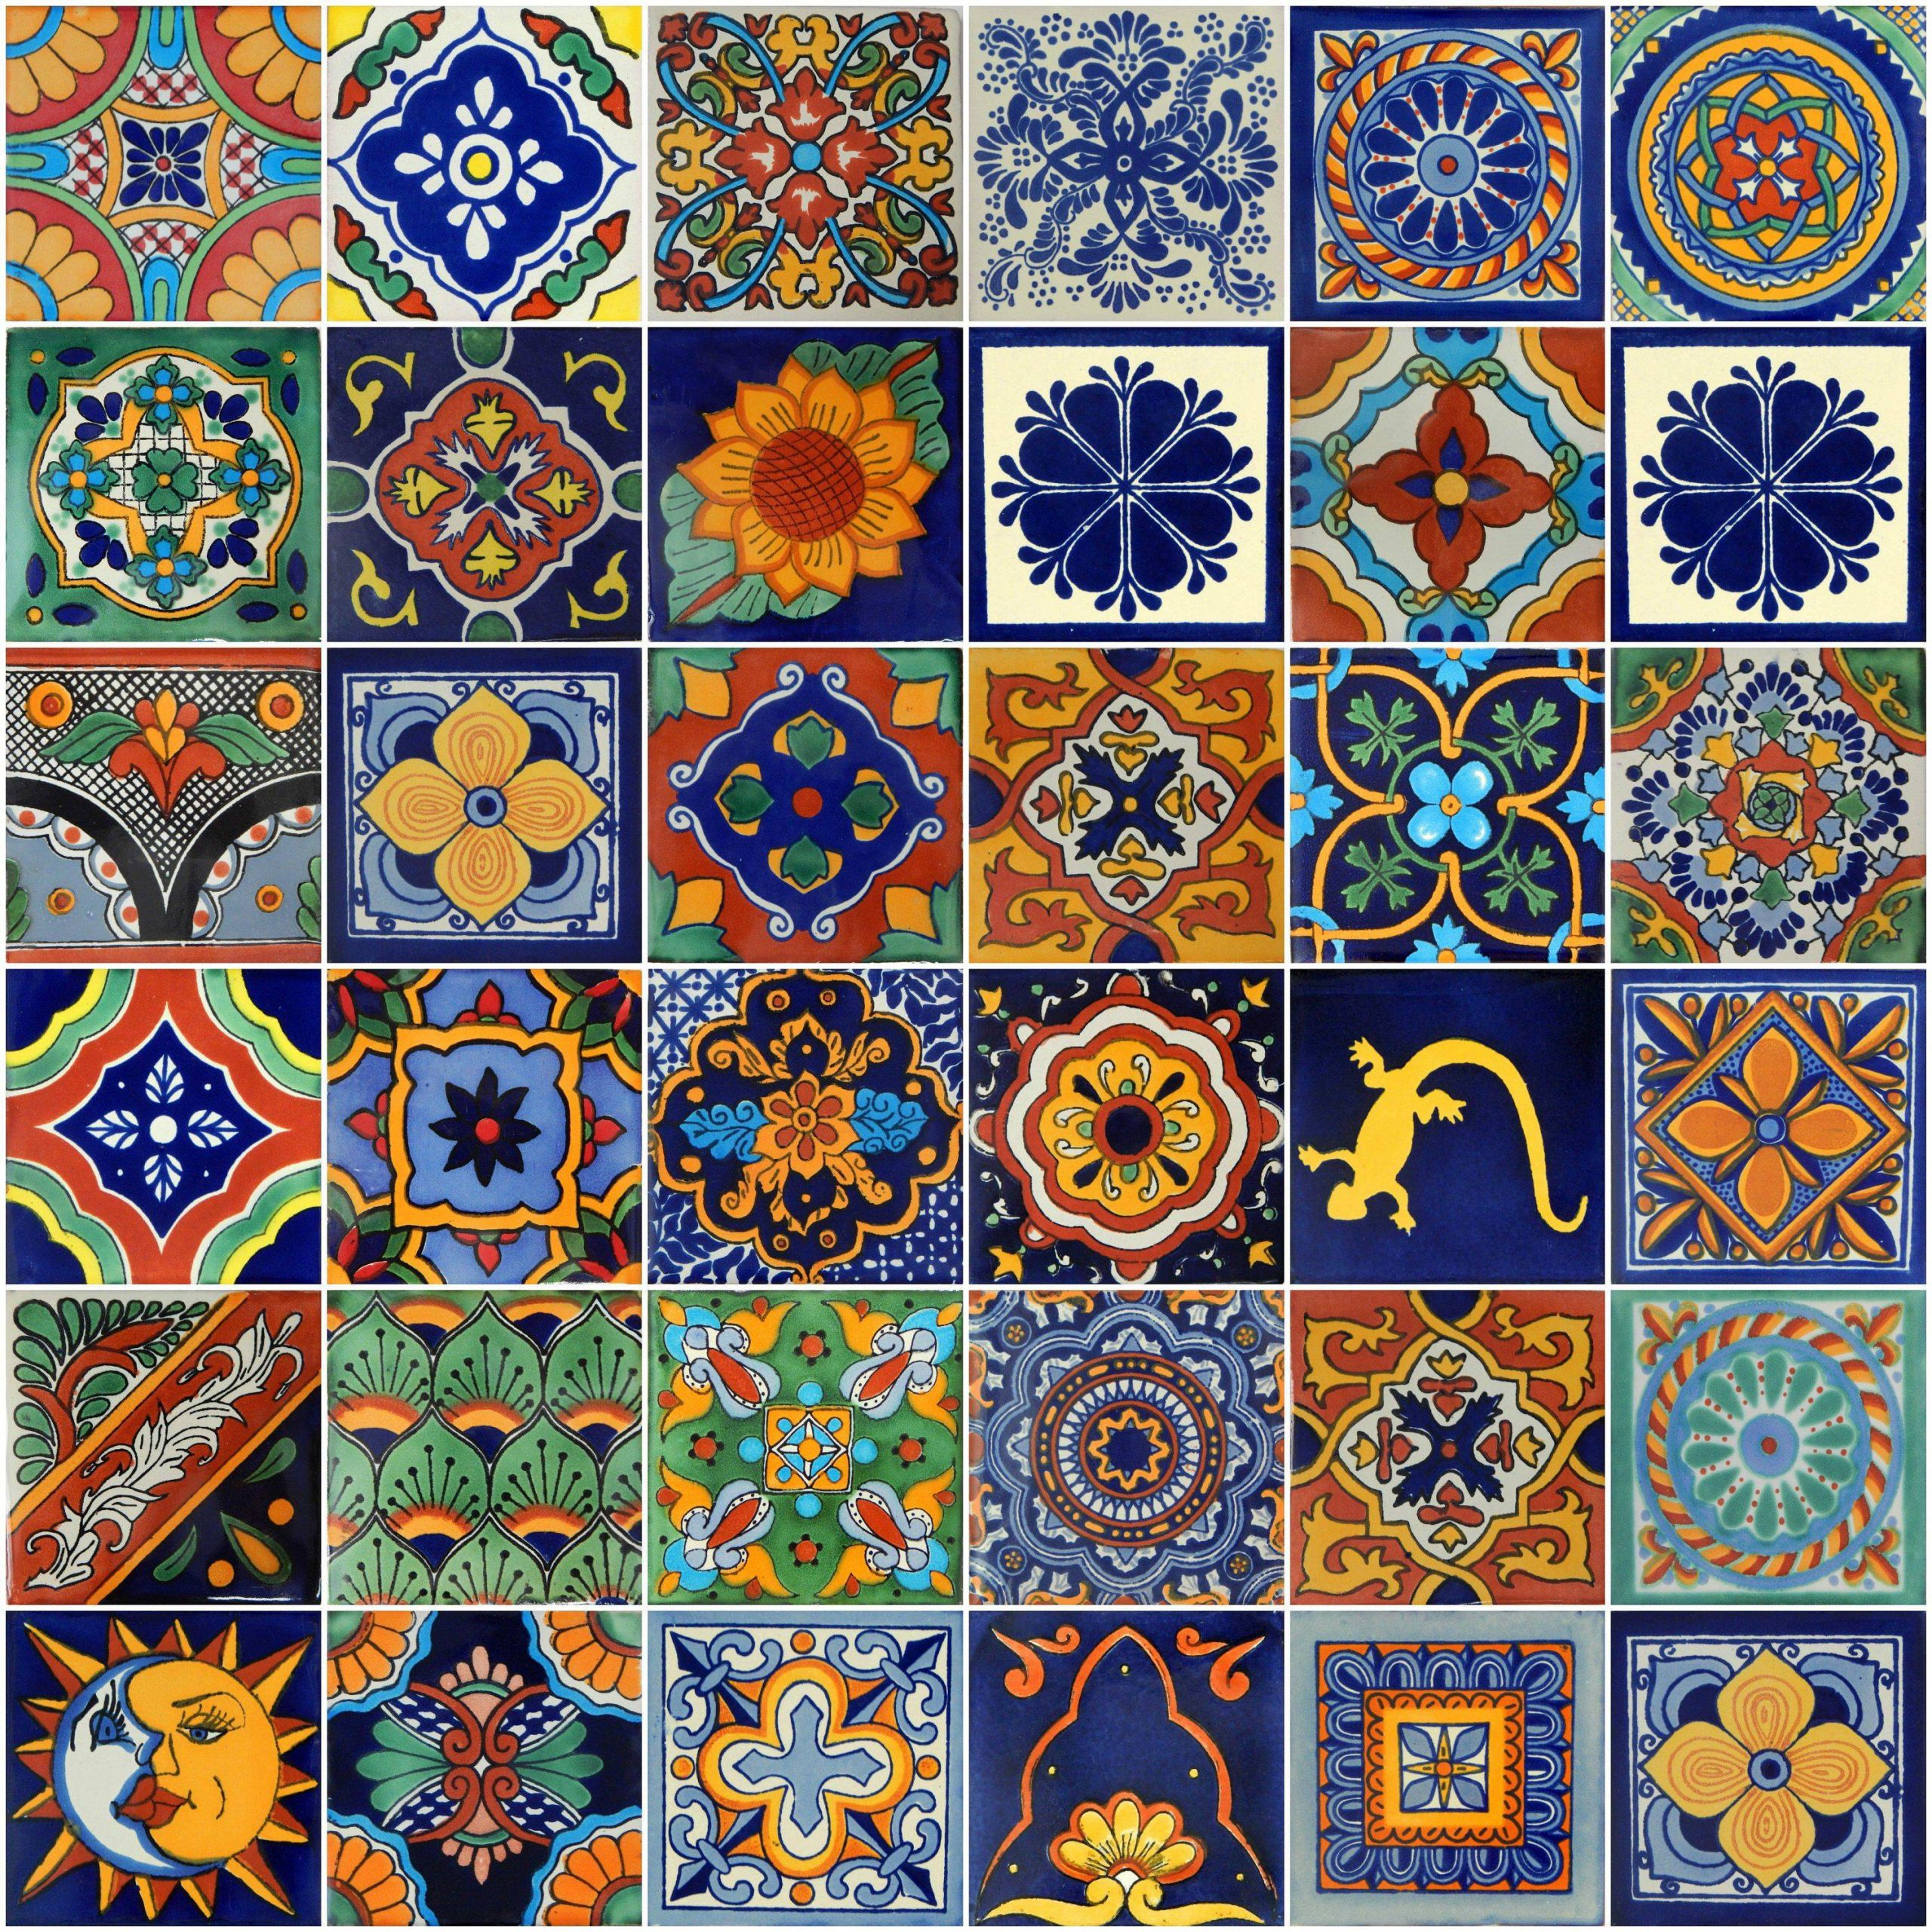 Exceptional Decorative 4x4 Ceramic Tiles Elegant Box 100 Mexican Talavera Tiles Handmade assorted Designs